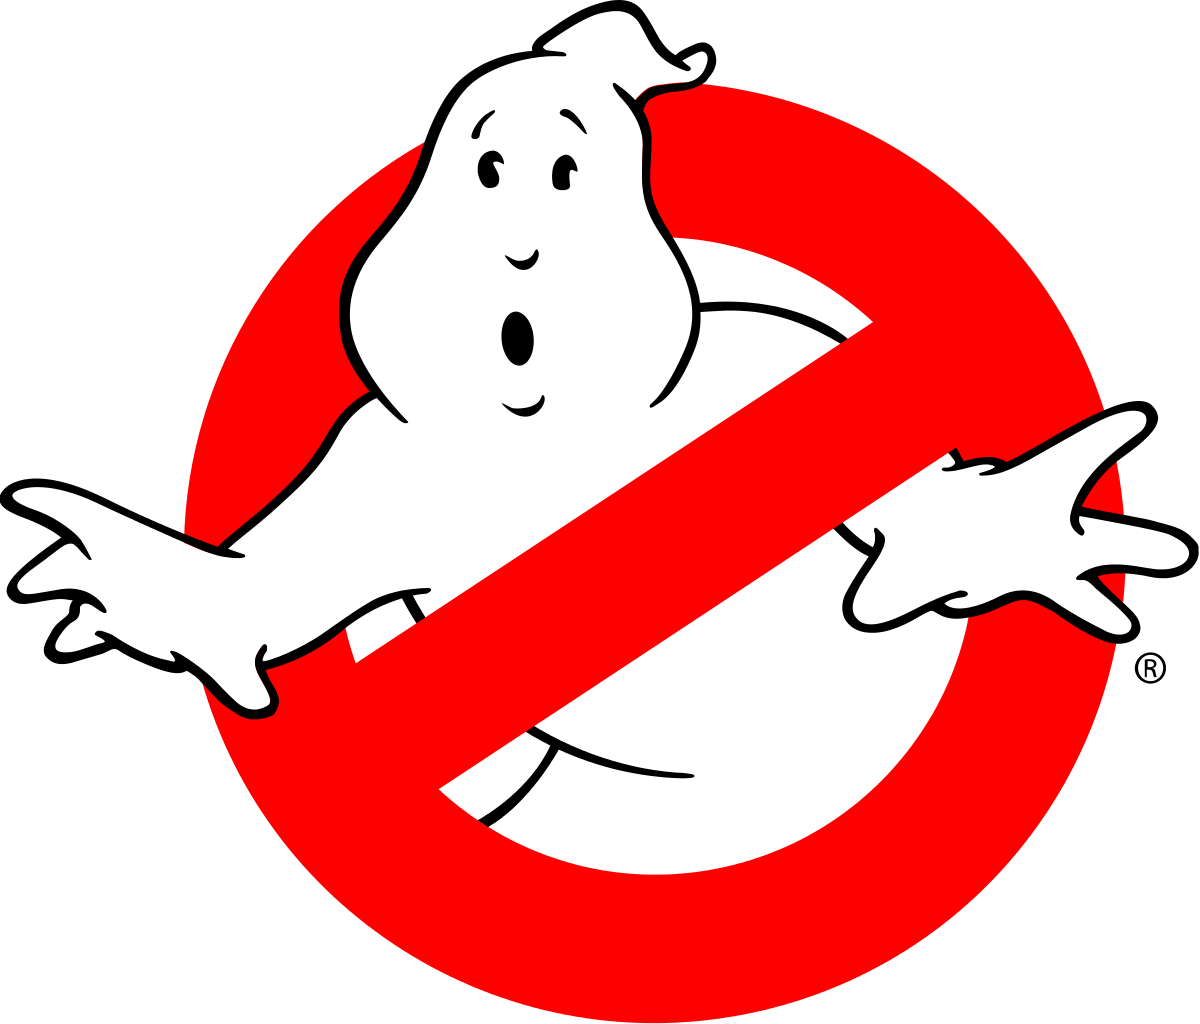 Ghostbusters As A Netflix Series? According to Dan Aykroyd